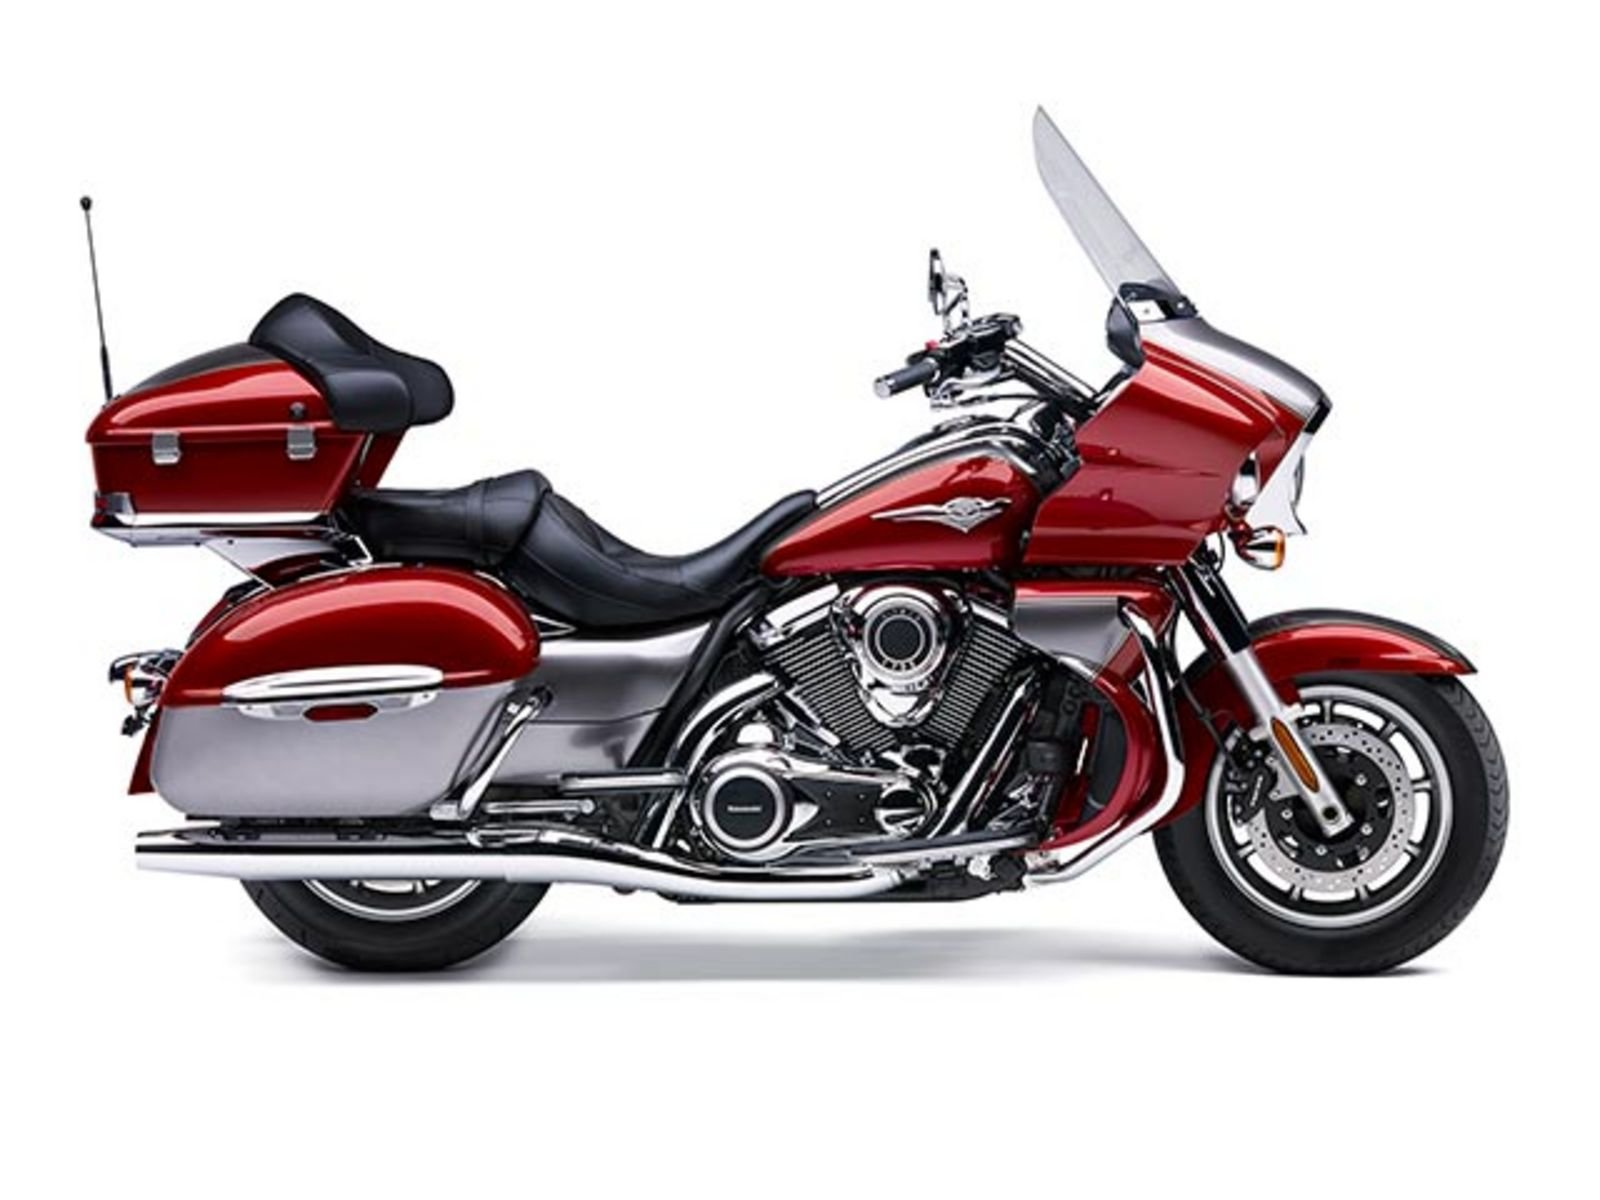 2014 kawasaki vulcan 1700 voyager abs review top speed. Black Bedroom Furniture Sets. Home Design Ideas